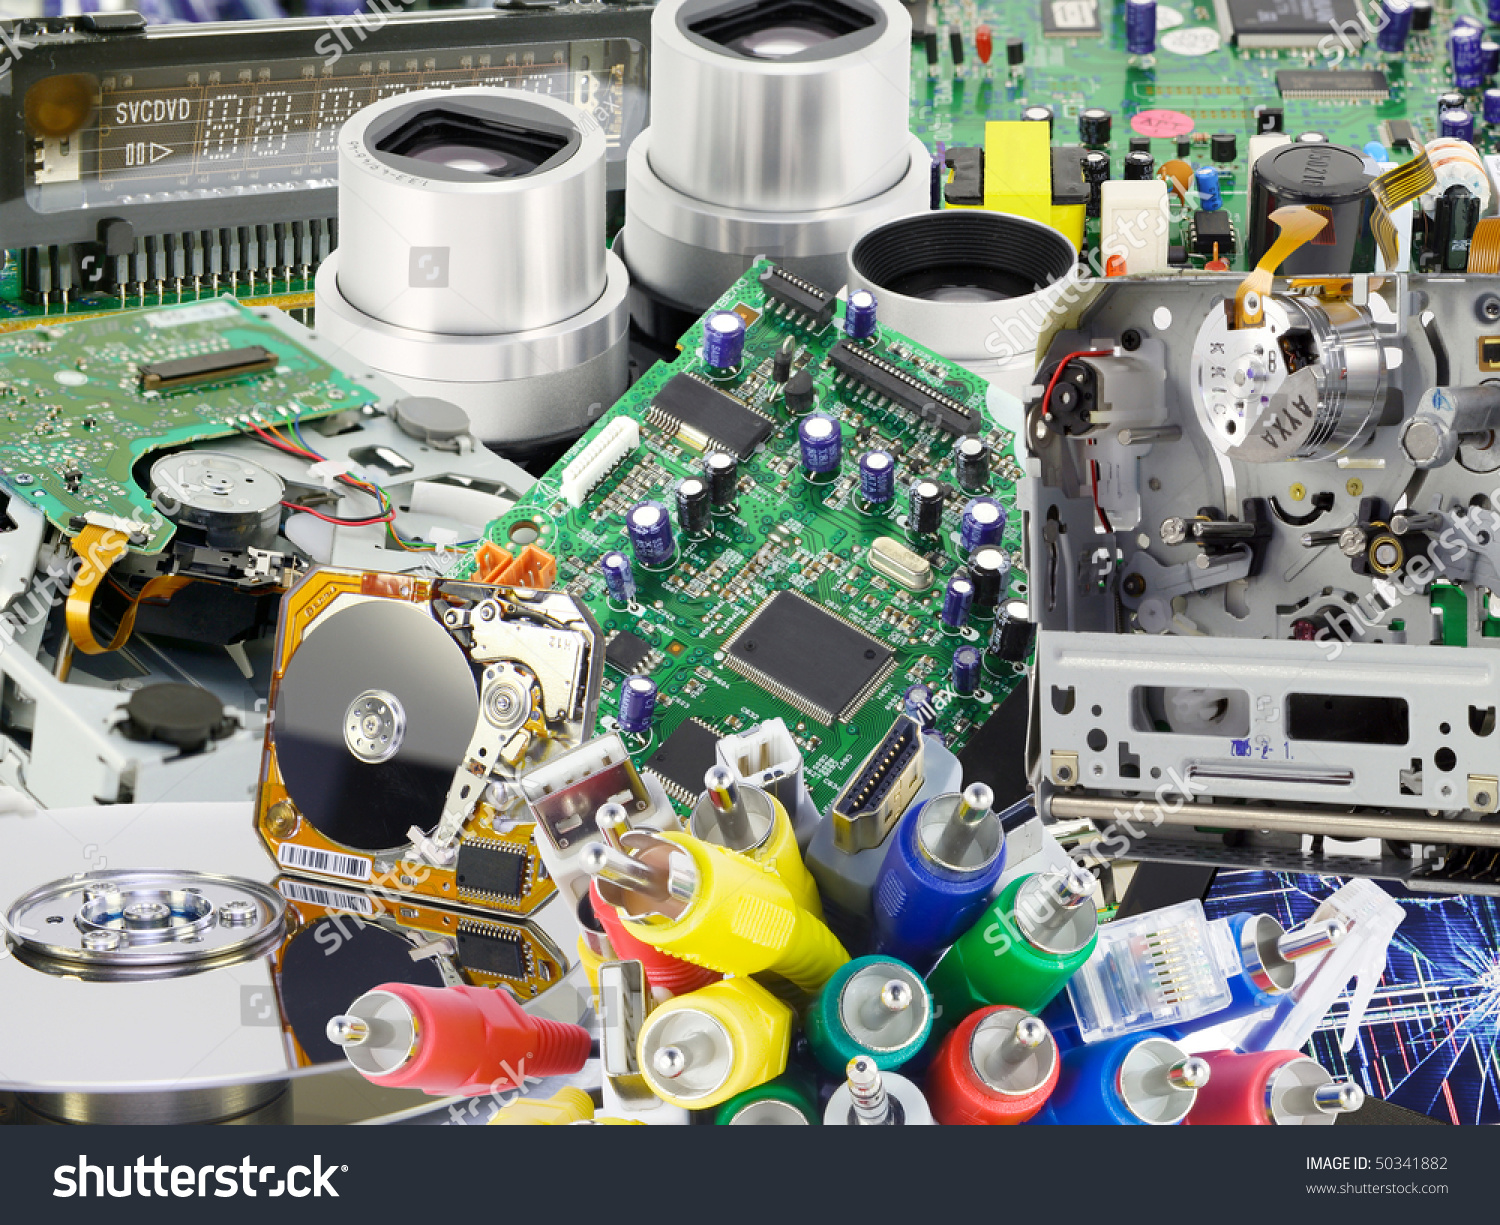 Printedcircuit Boards Electronic Spare Parts Modern Stock Photo Stockfoto Printed Circuit Board Pcb Used In Industrial The And From Digital Devices Collage Background